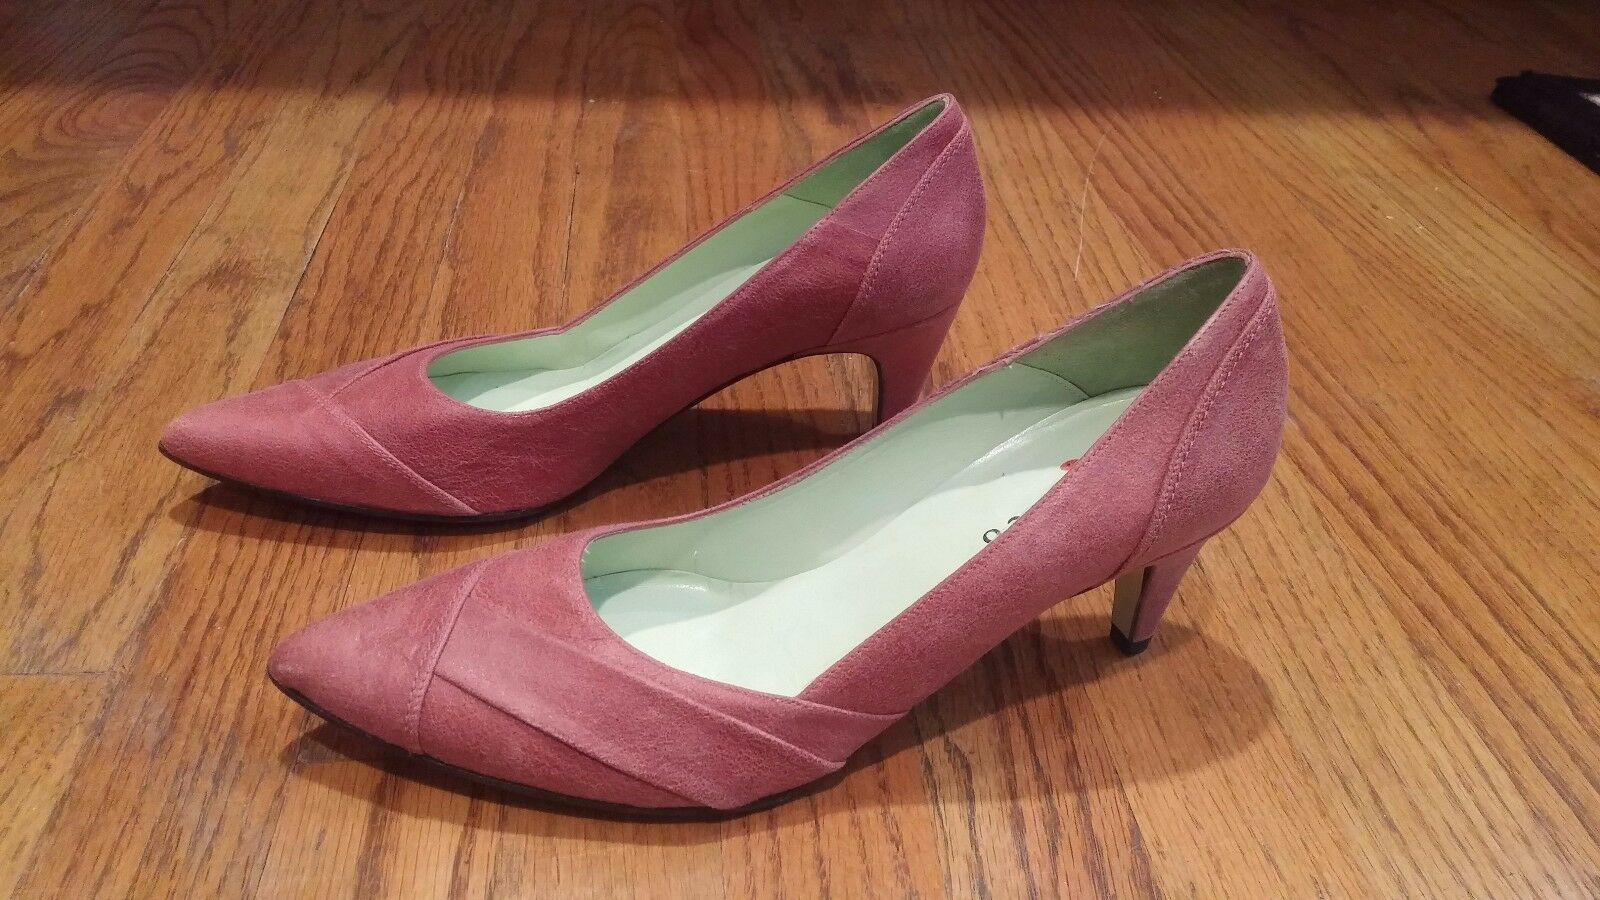 NEW Coclico ITALY Suede Leather Rosa Kitten Low Heel schuhe 36 1 2 6.5